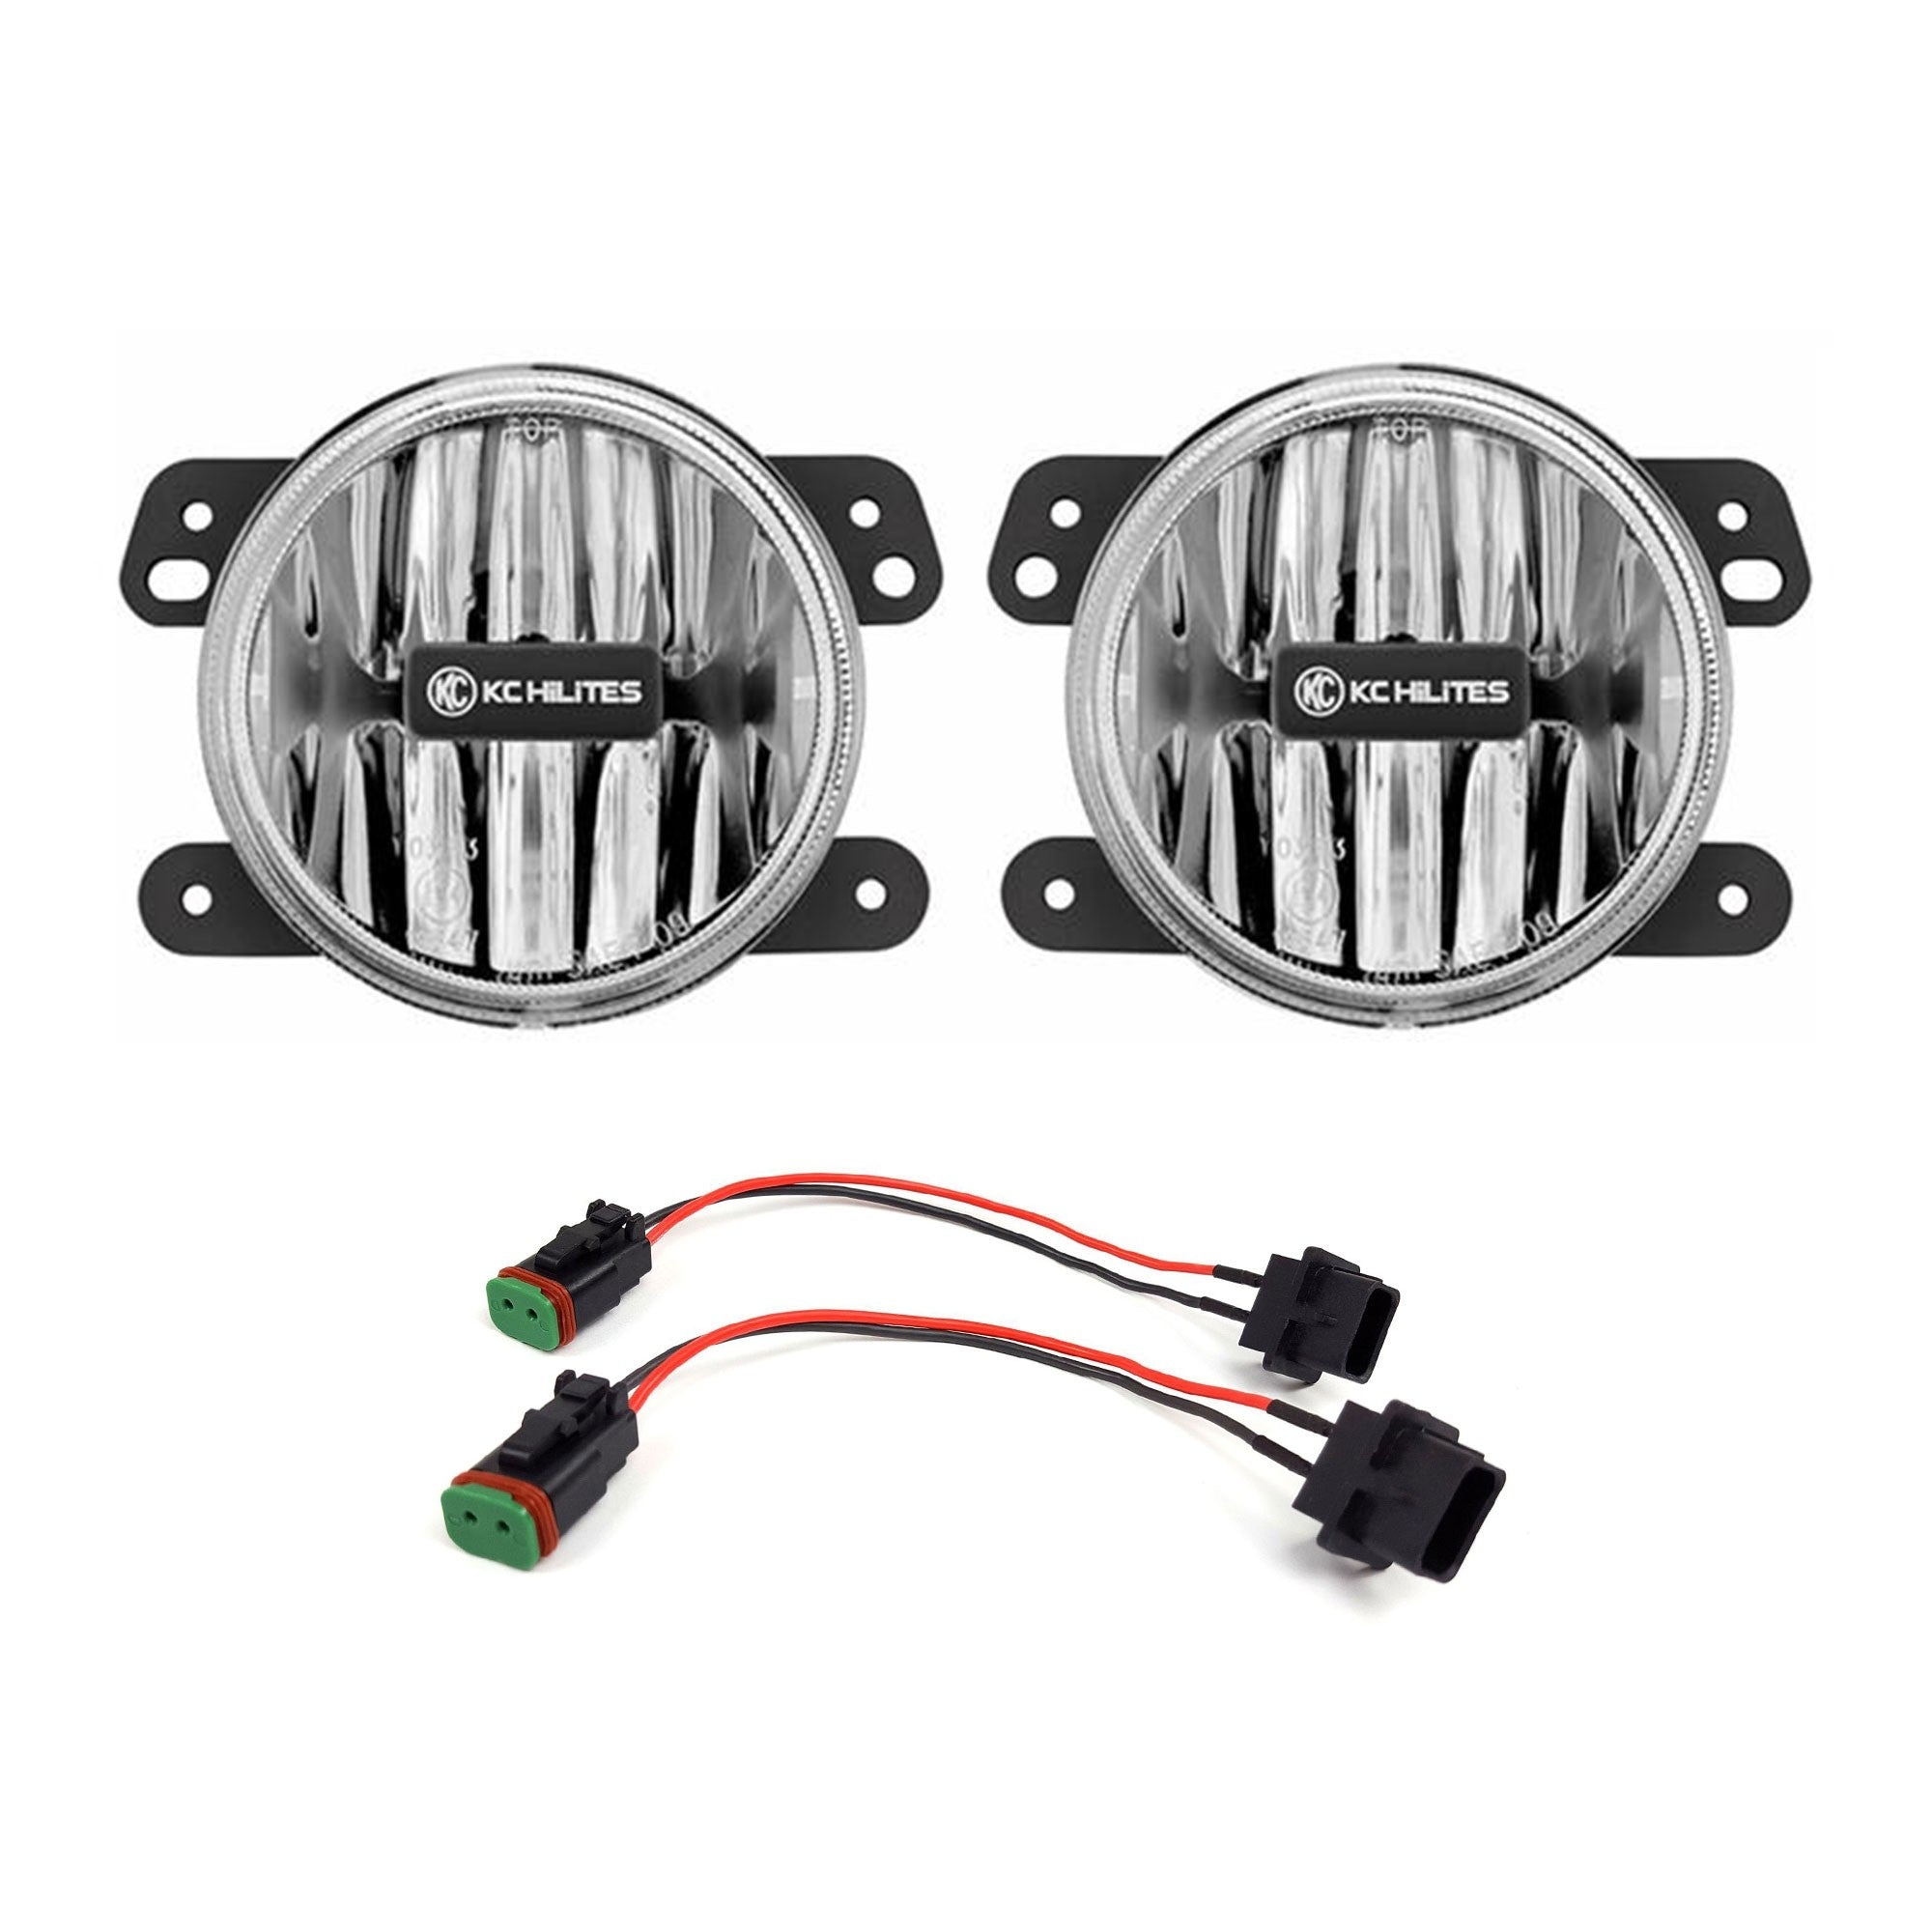 KC HiLiTES Gravity LED G4 Clear Fog Lights for Jeep JL-Rubicon-Moab /& JT-Rubicon Steel Bumper